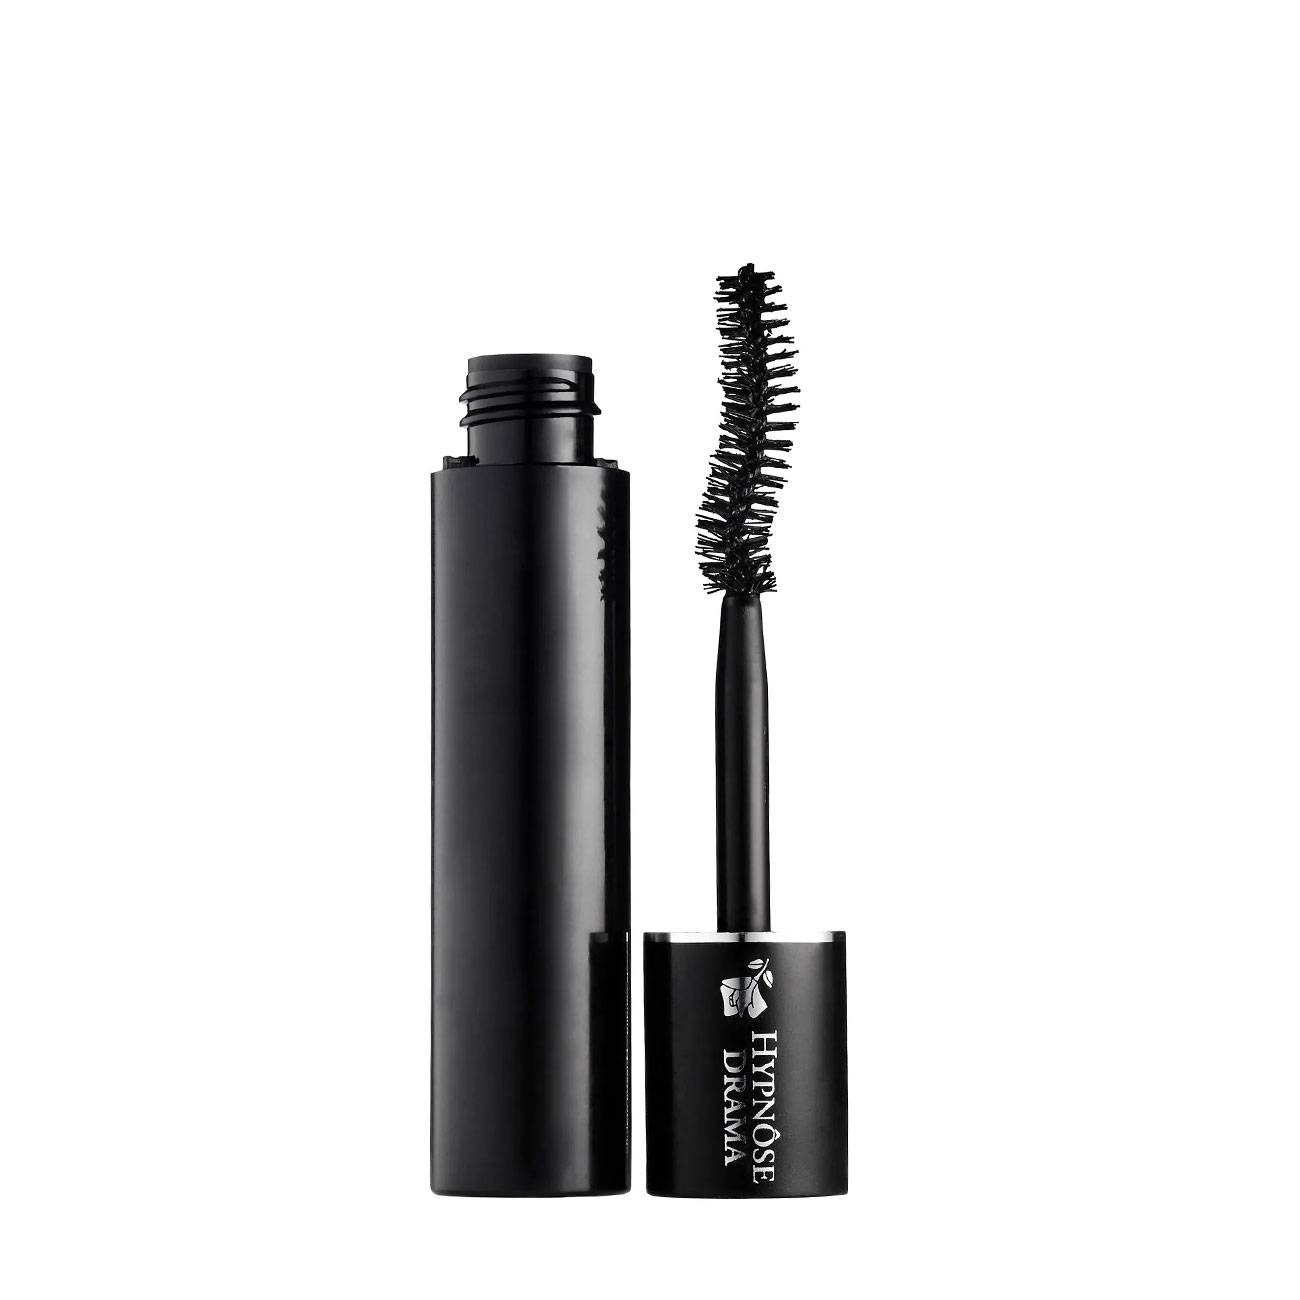 HYPNOSE DRAMA MASCARA MINI 4ml imagine produs